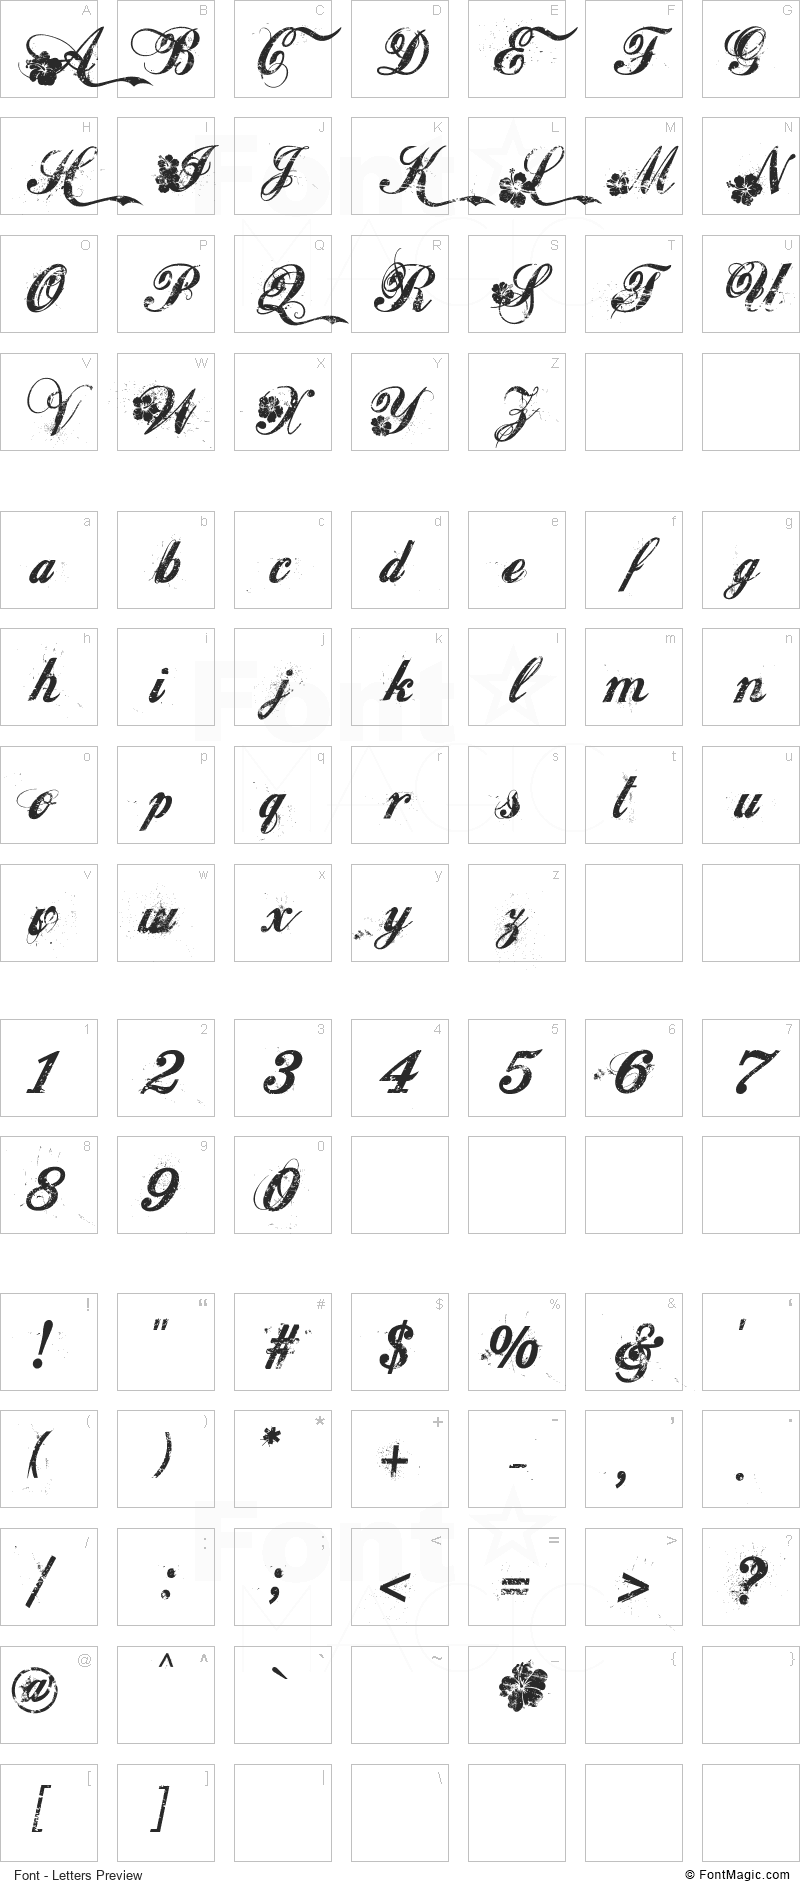 Hawaii Lover Font - All Latters Preview Chart